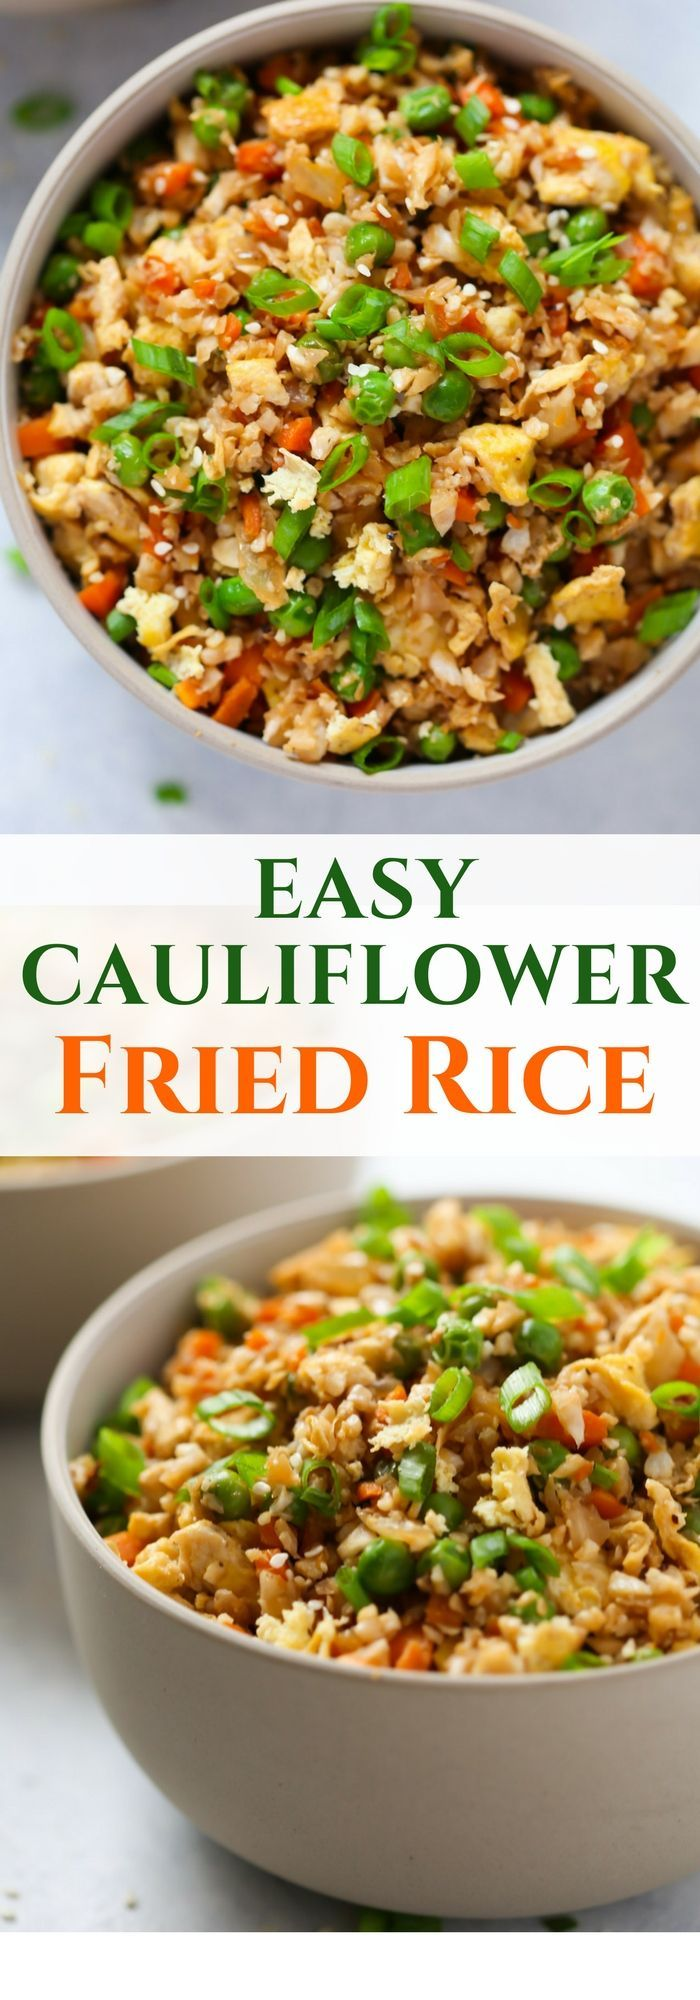 This Easy Cauliflower Fried Rice recipe is ready in less than 20 minutes and it's loaded with veggies such as cauliflower, onions, carrots and green peas. Also it's low-carb, gluten-free, vegetarian and it can be vegan too if you replace eggs for tofu.